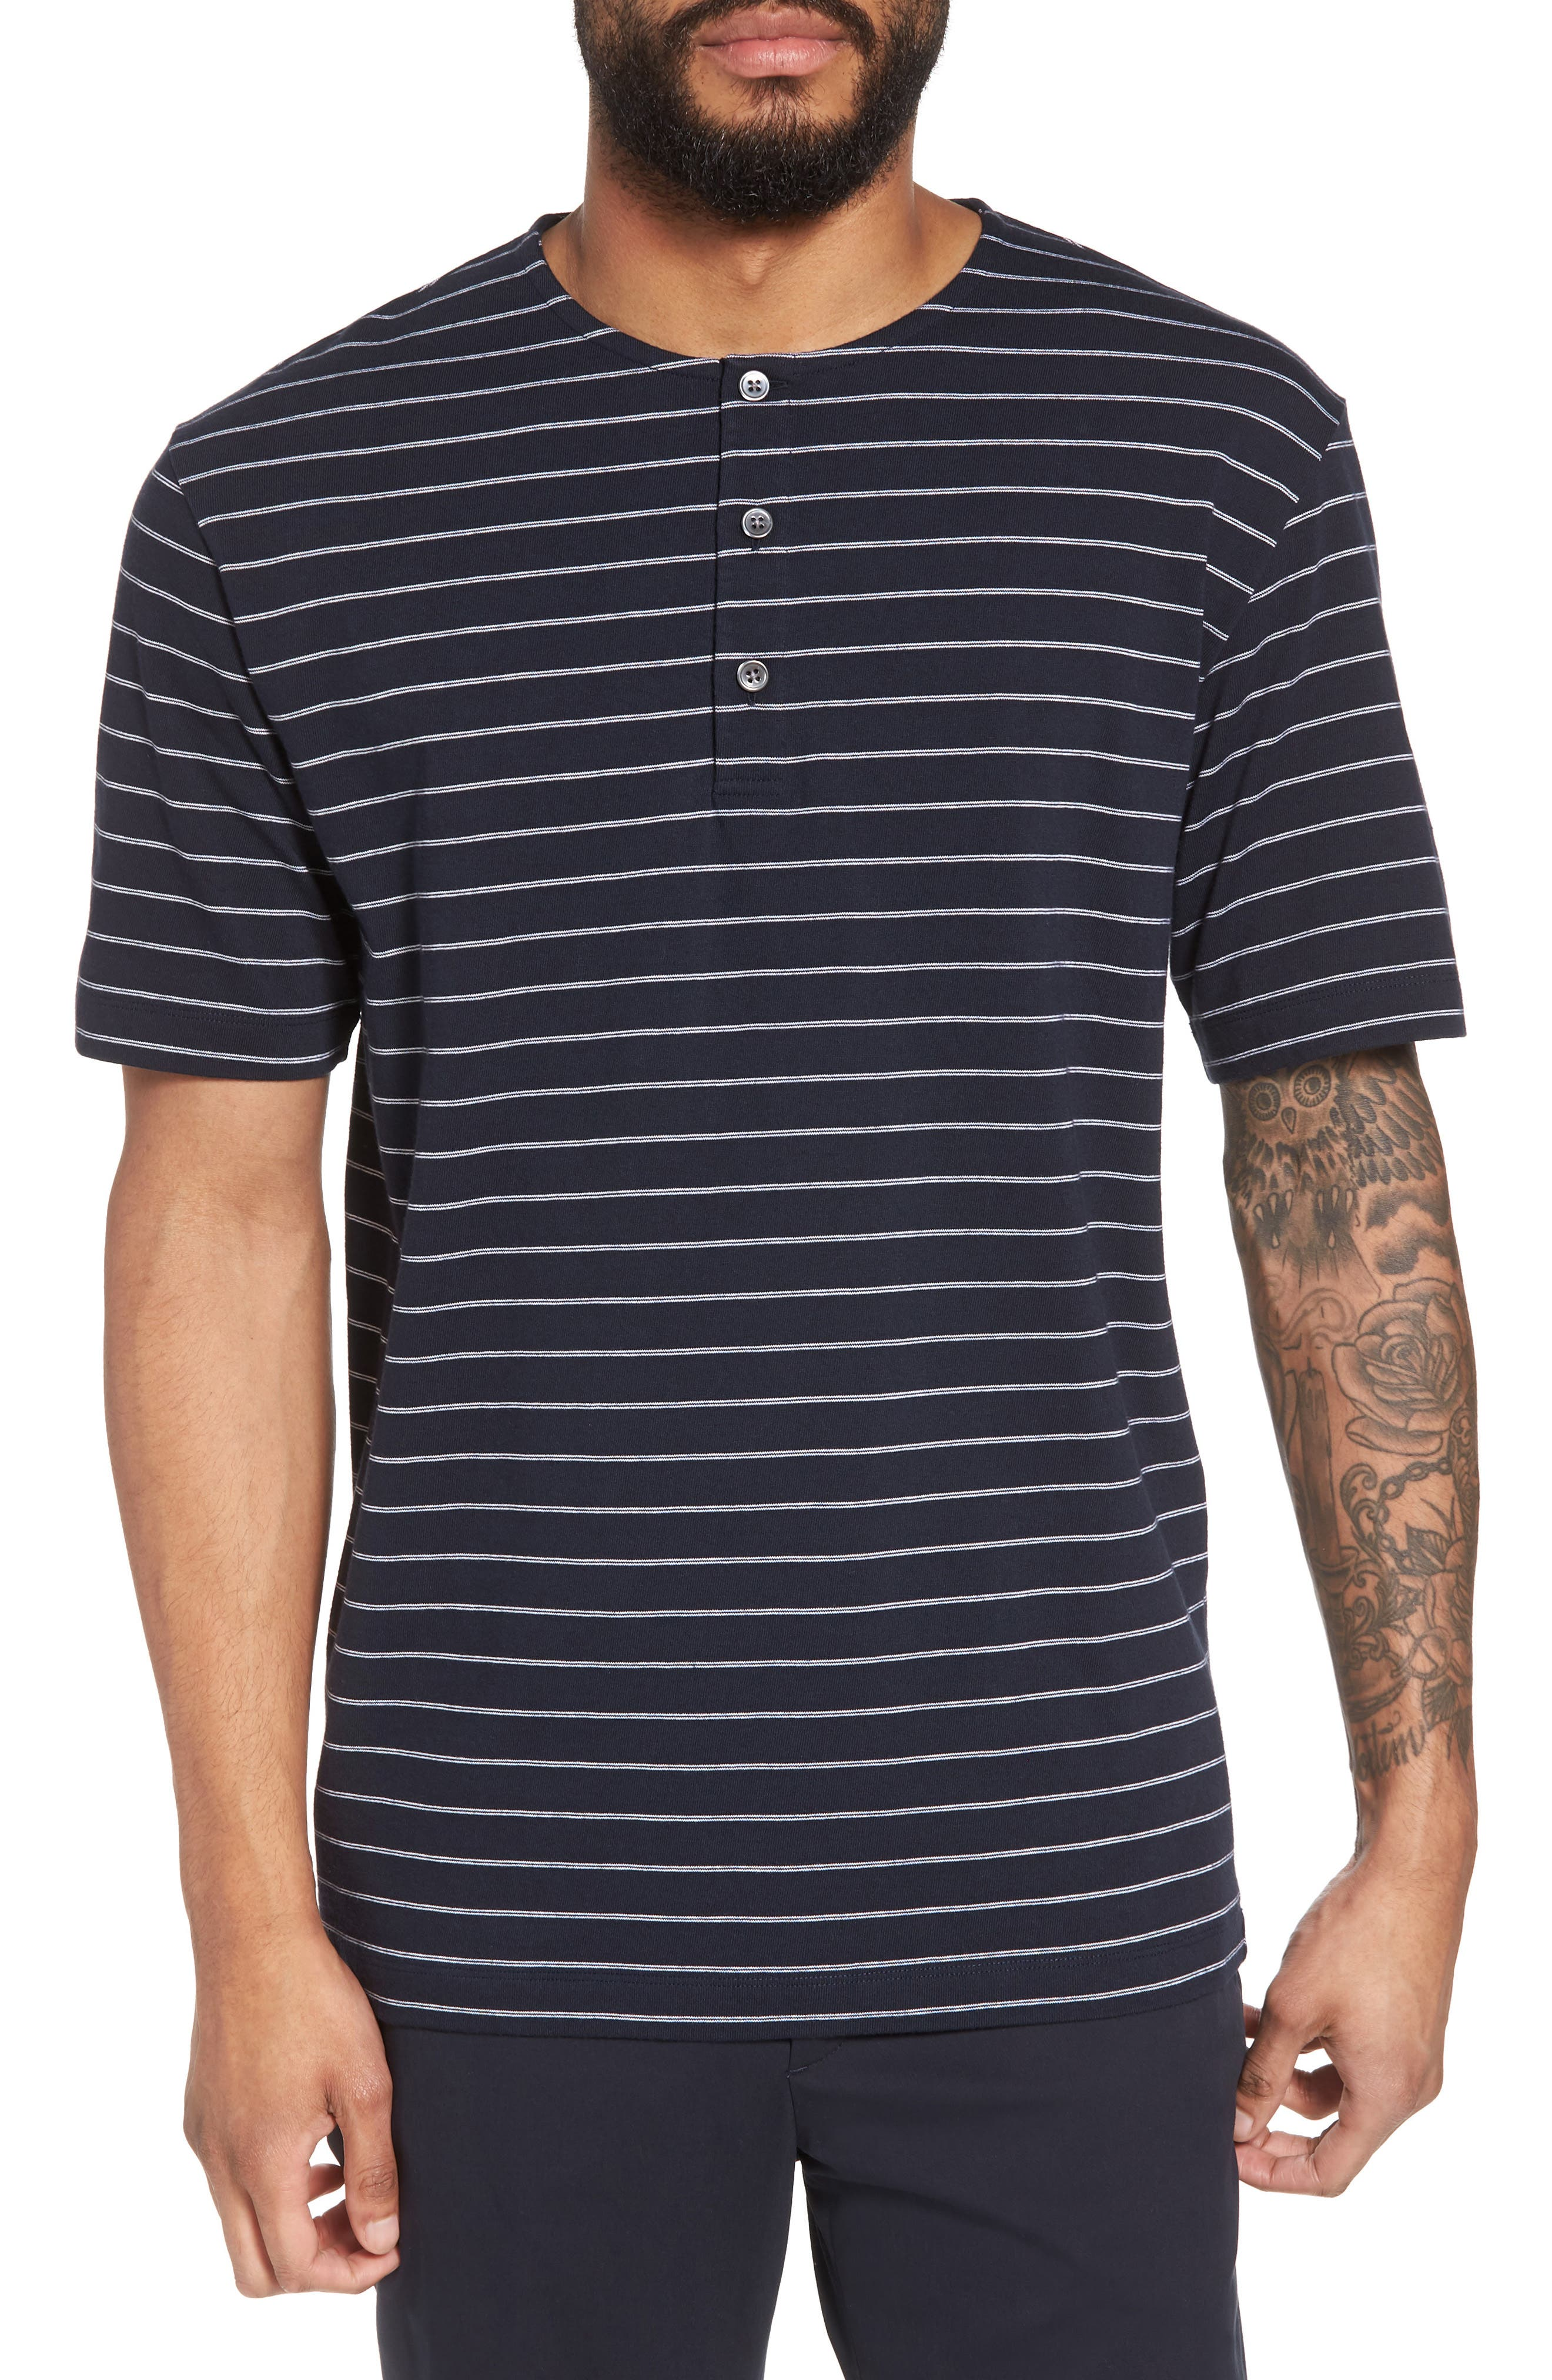 Alternate Image 1 Selected - Theory Relaxed Stripe Henley